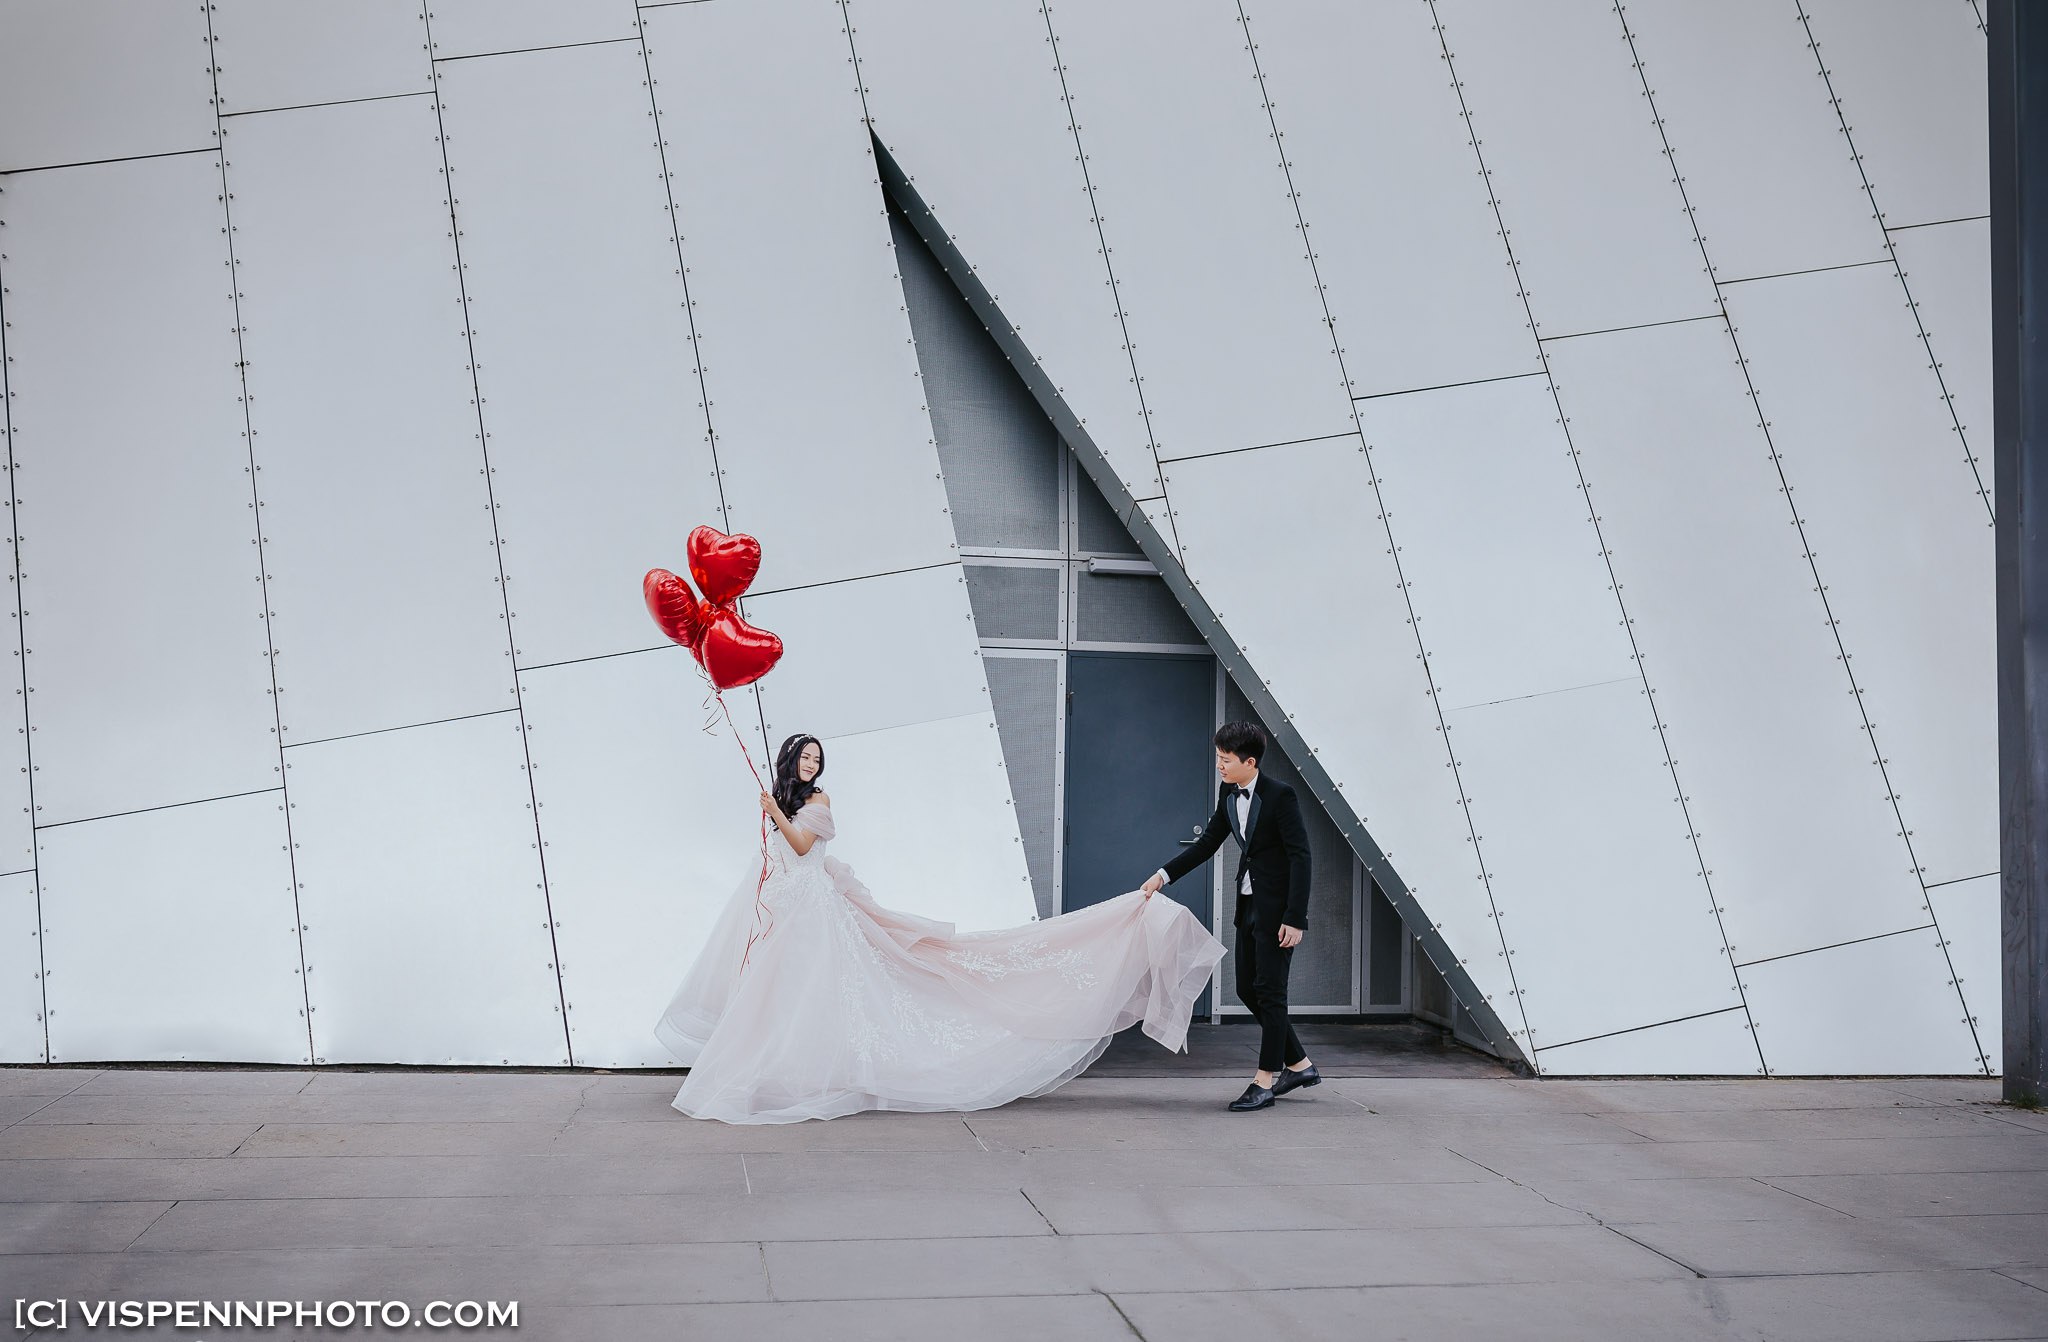 PRE WEDDING Photography Melbourne ZHPENN P5D4 1364